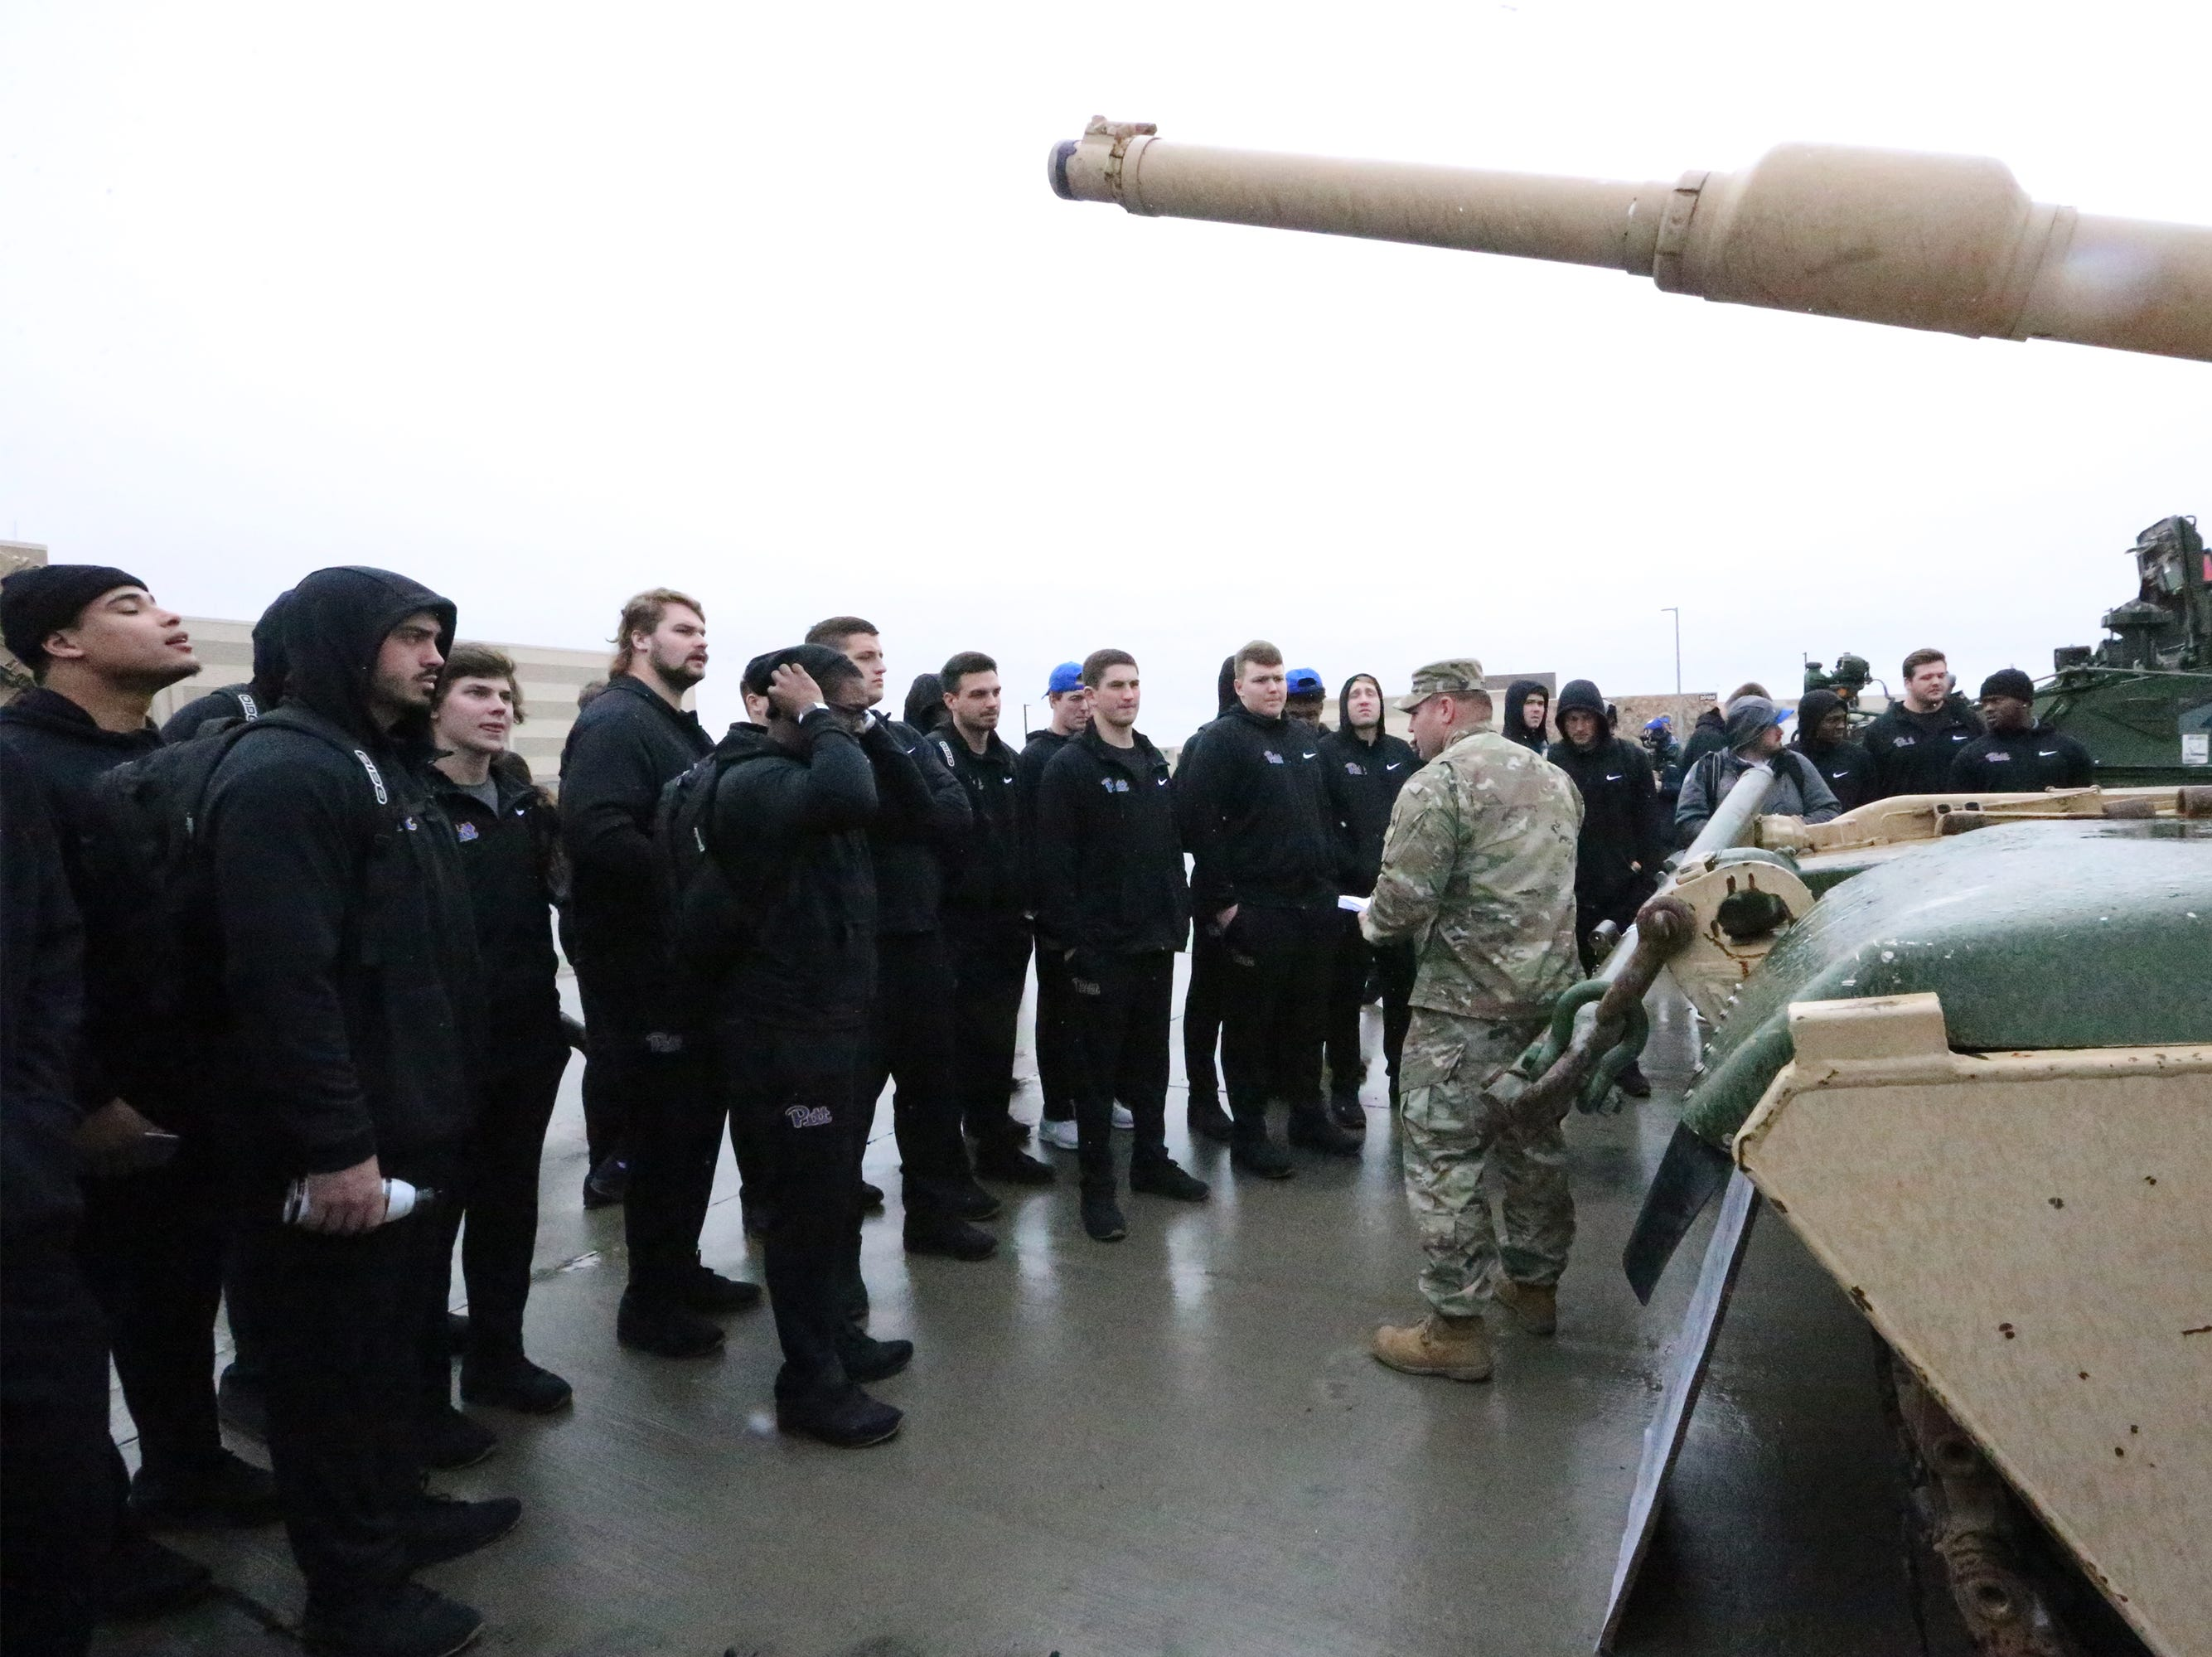 The University of Pittsburgh football team got up close to military hardware during a visit to Fort Bliss Friday.